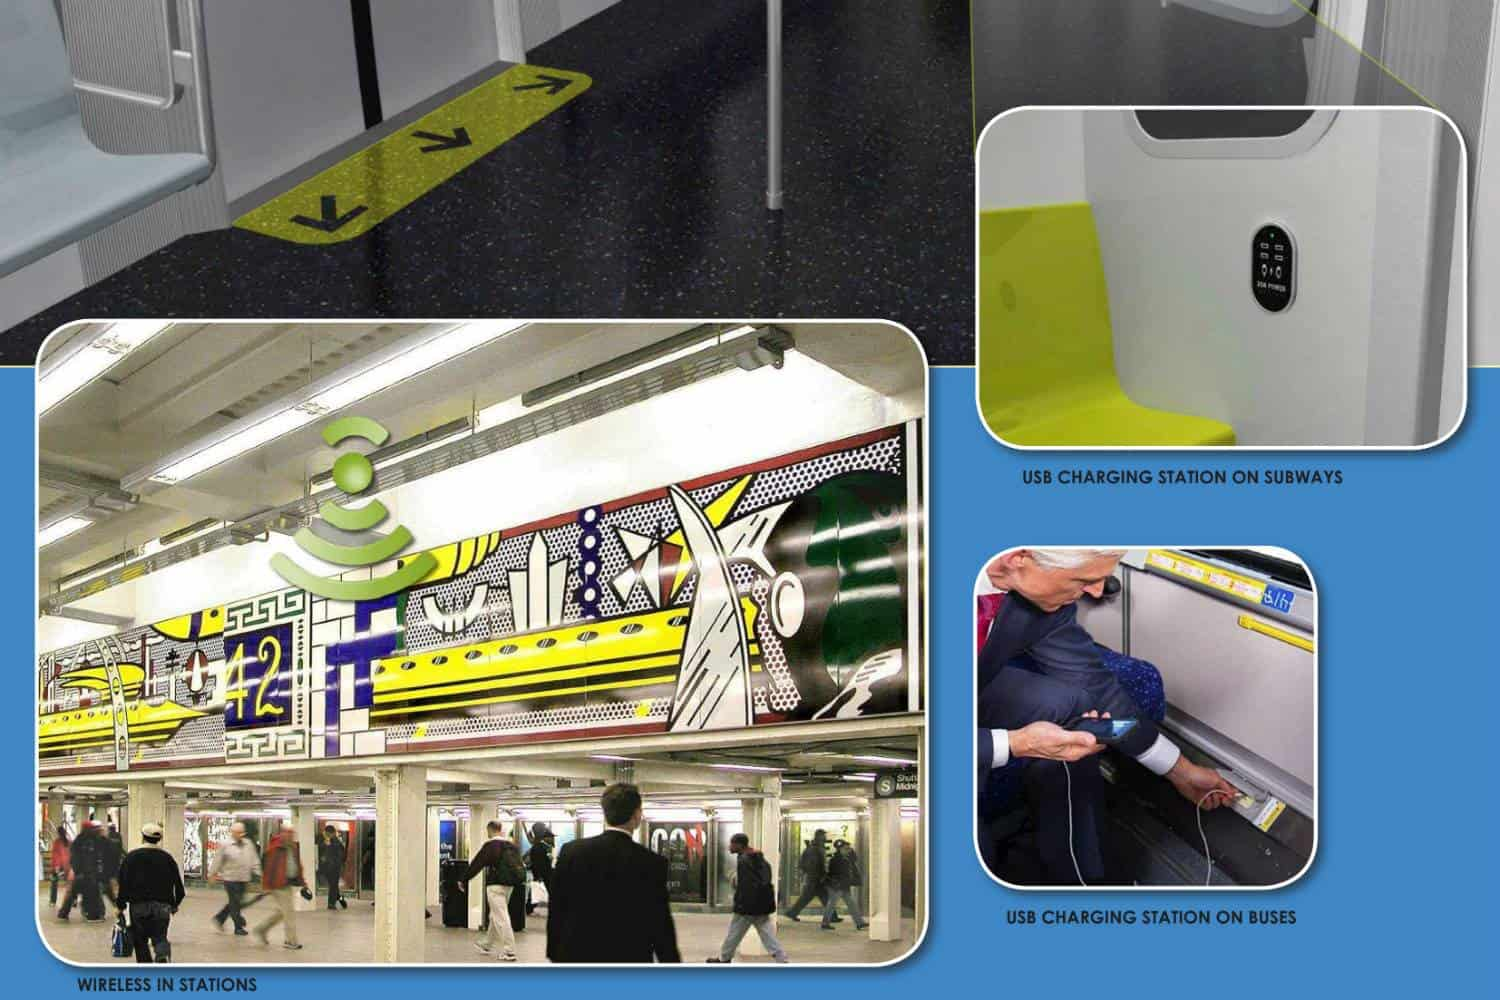 mta-wireless-hotspot-usb-charging-stations-1500x1000